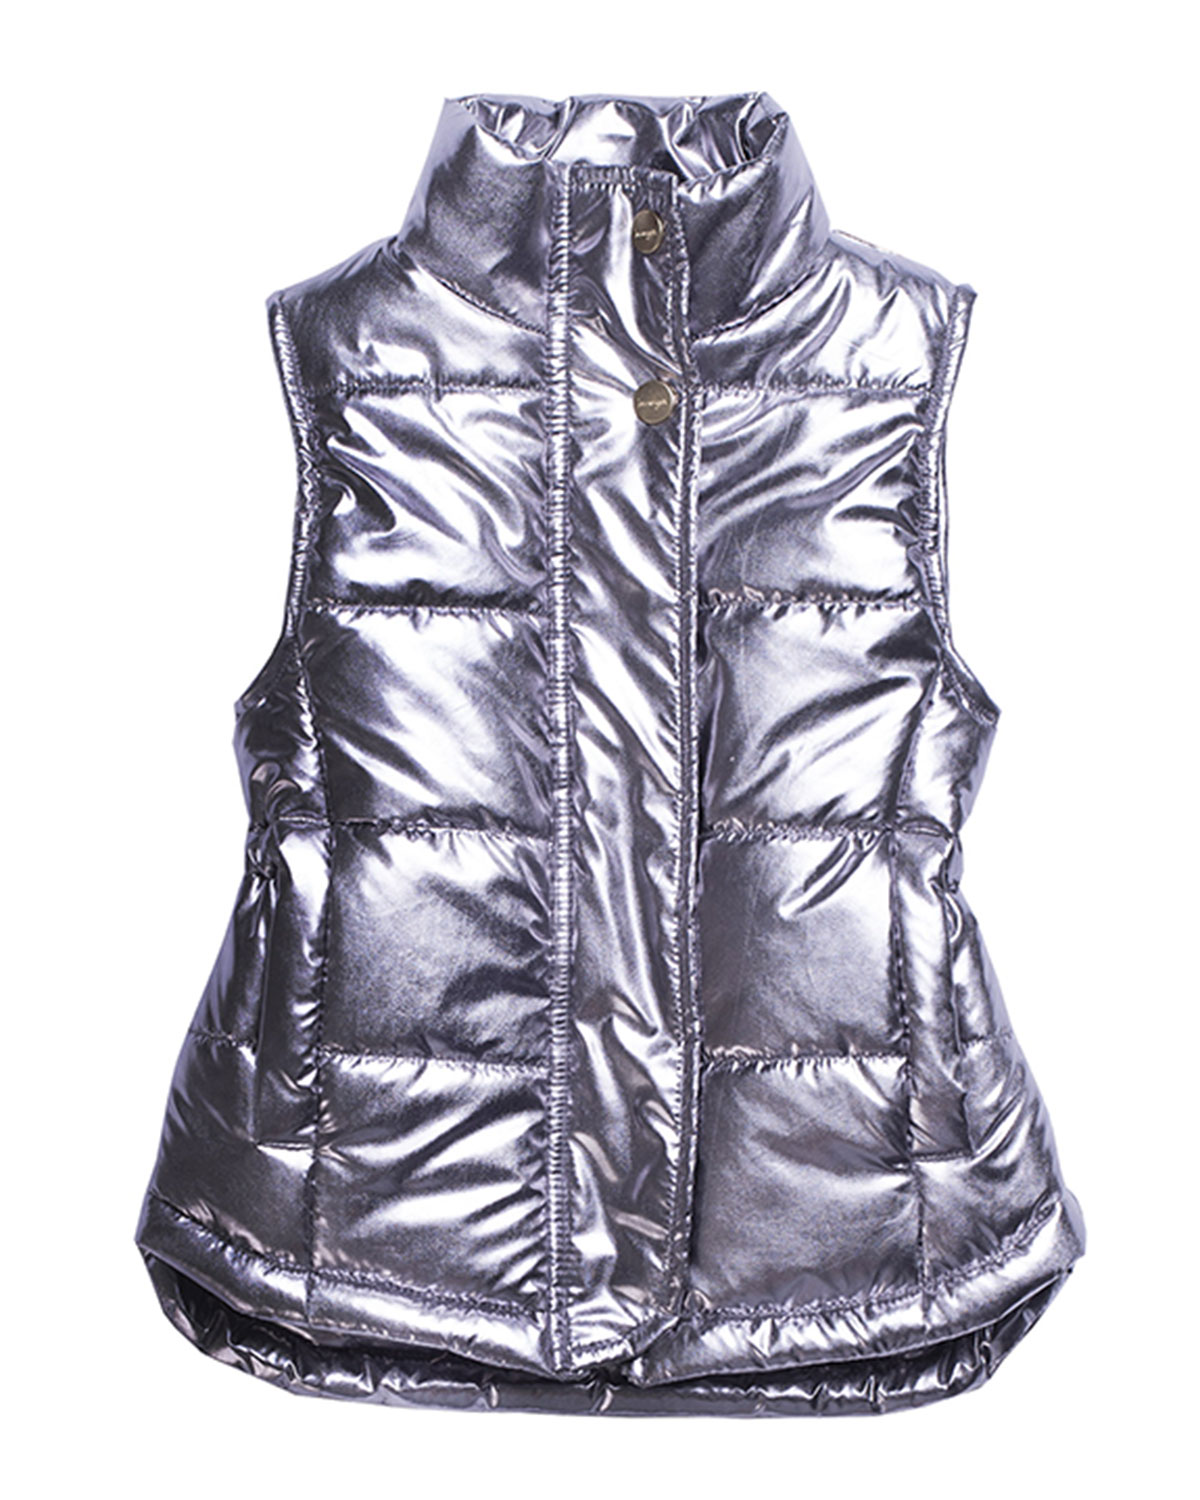 Metallic Quilted Puffer Vest, Size 4-6